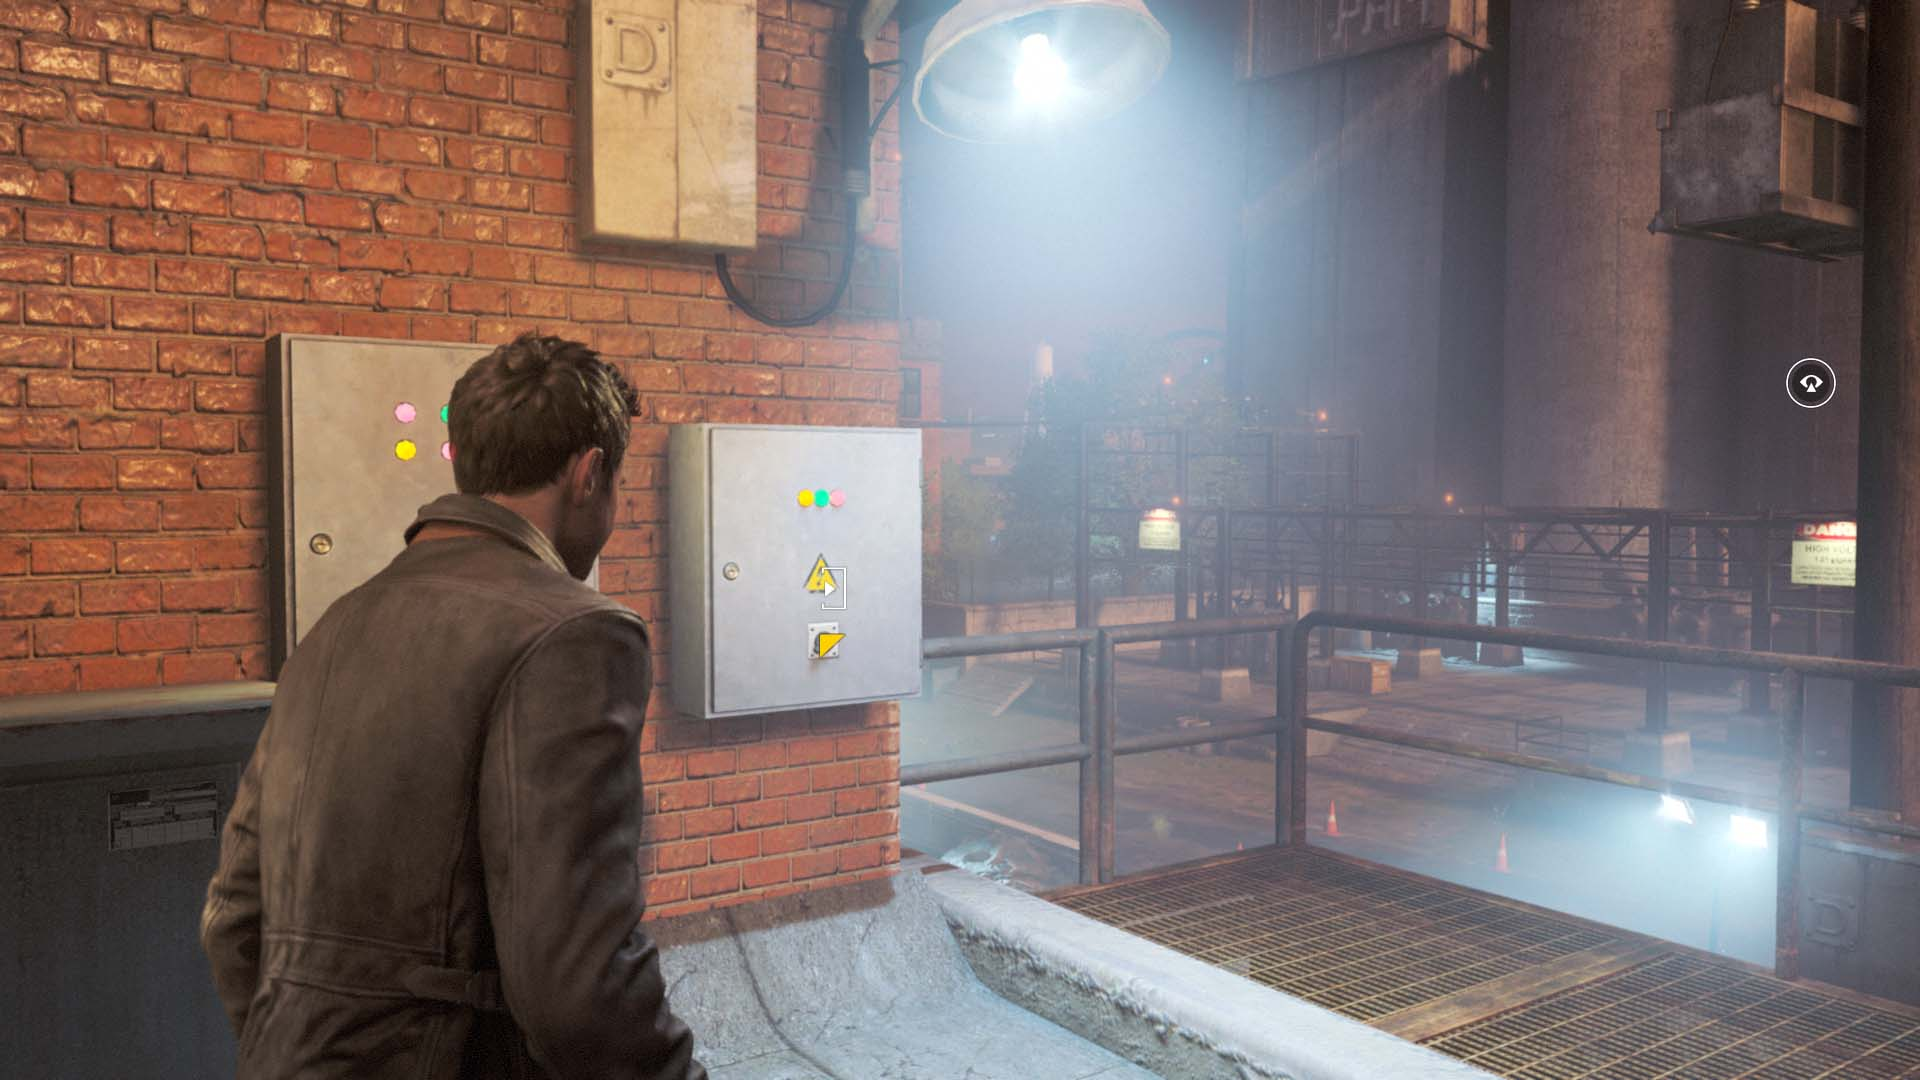 Quantum Break Collectibles Act 4 Polygon The Game Fuse Box Turn Around To Interact With A That Activates Final Ripple Of